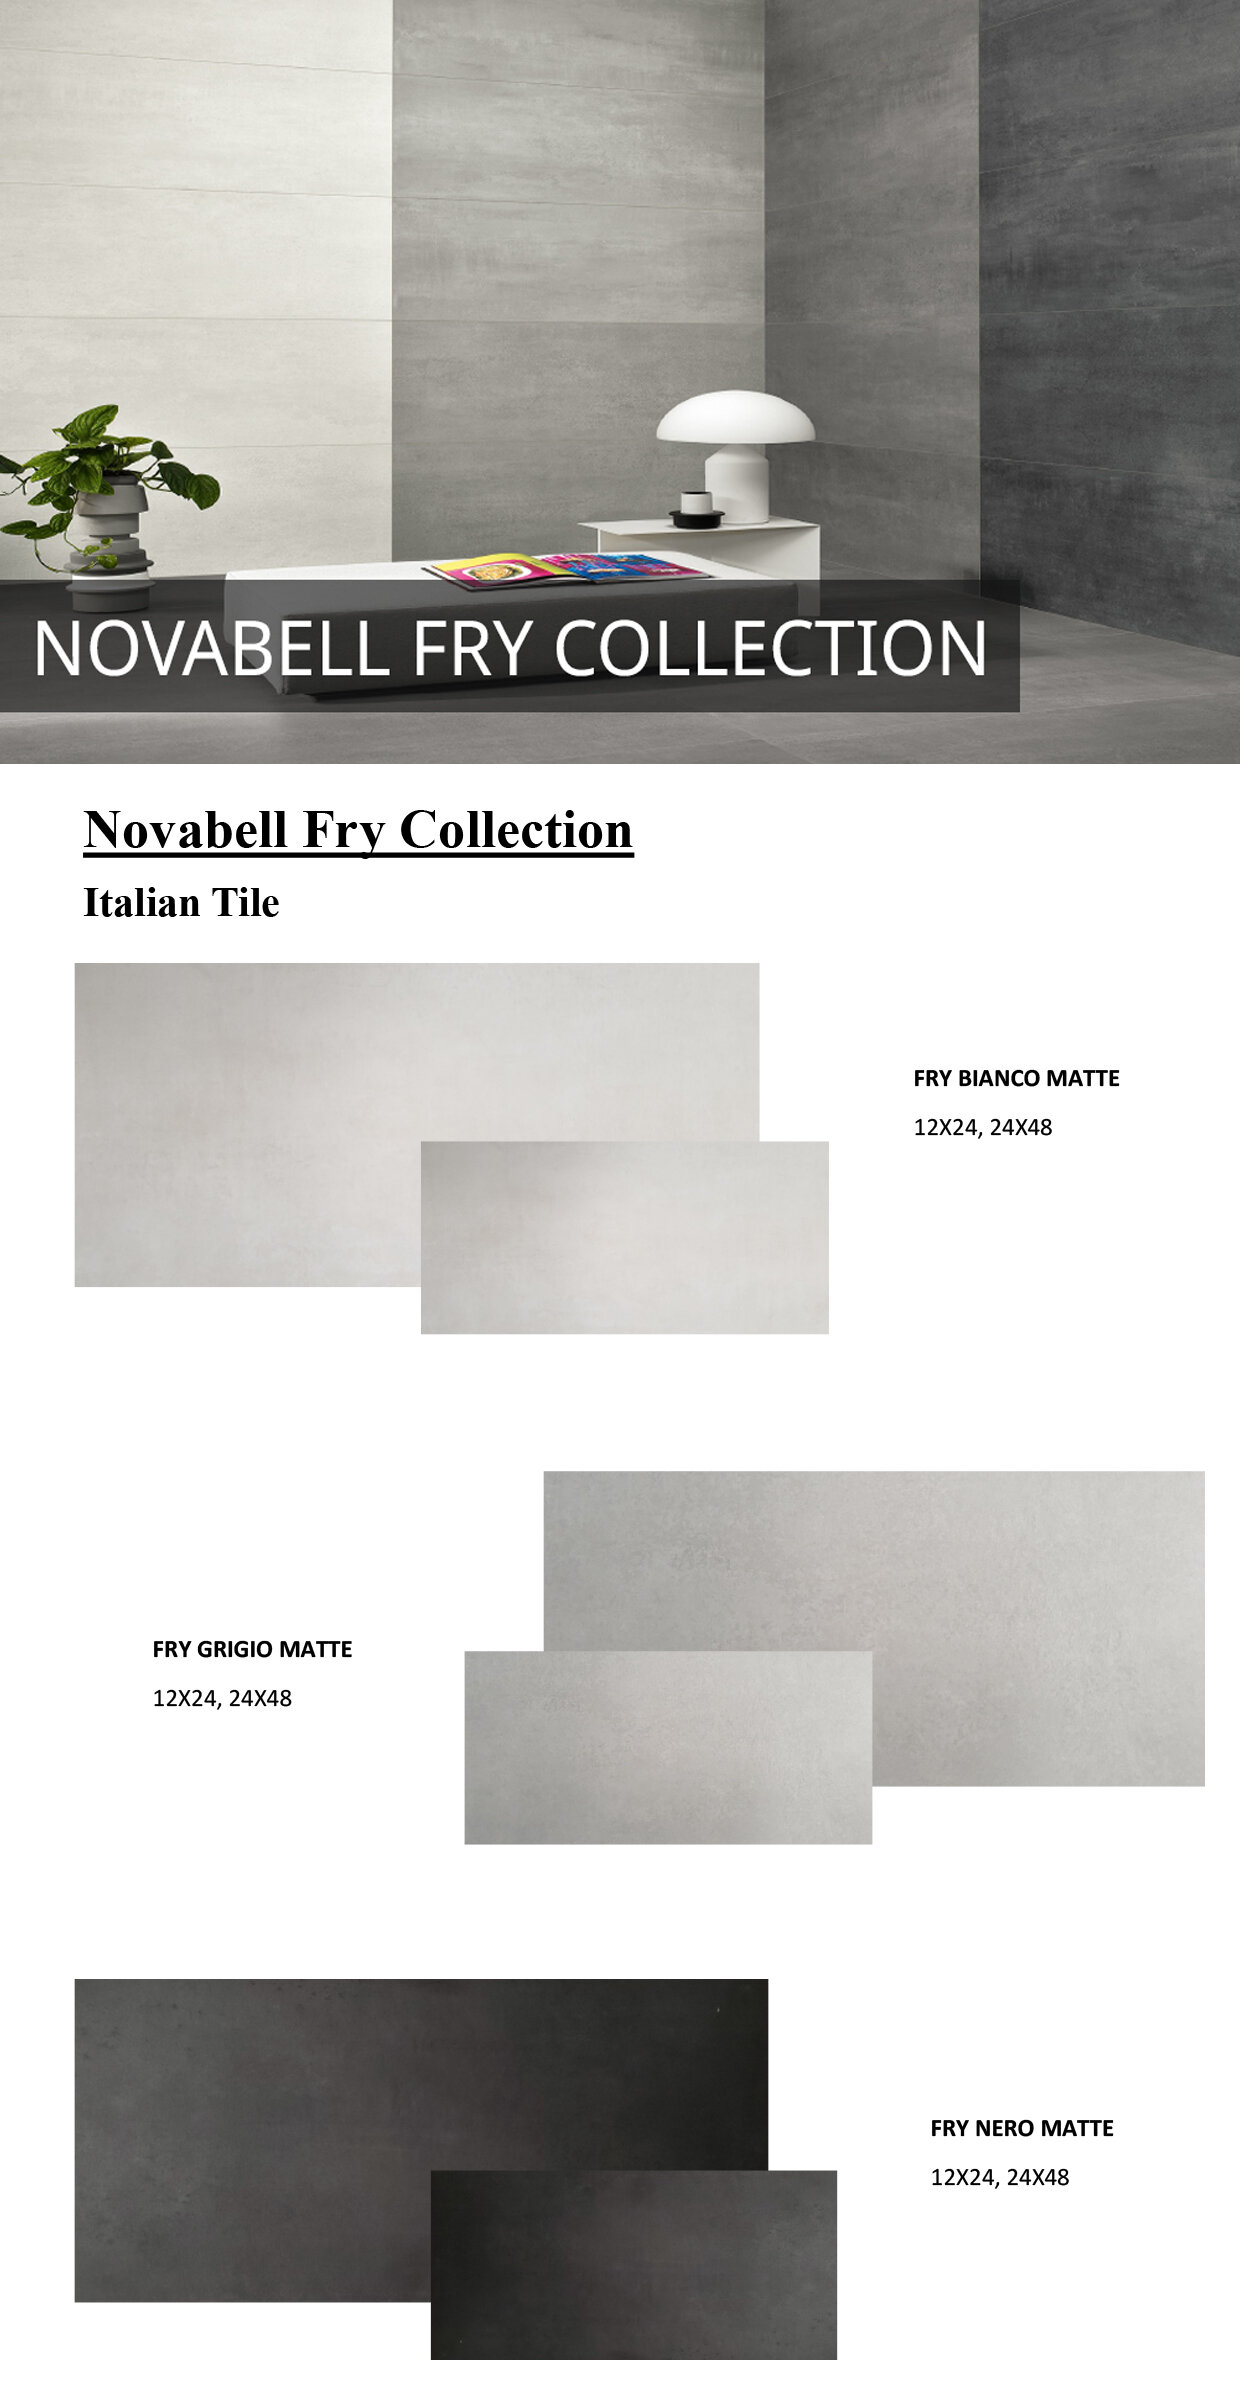 NovabellFryCollectioncombine